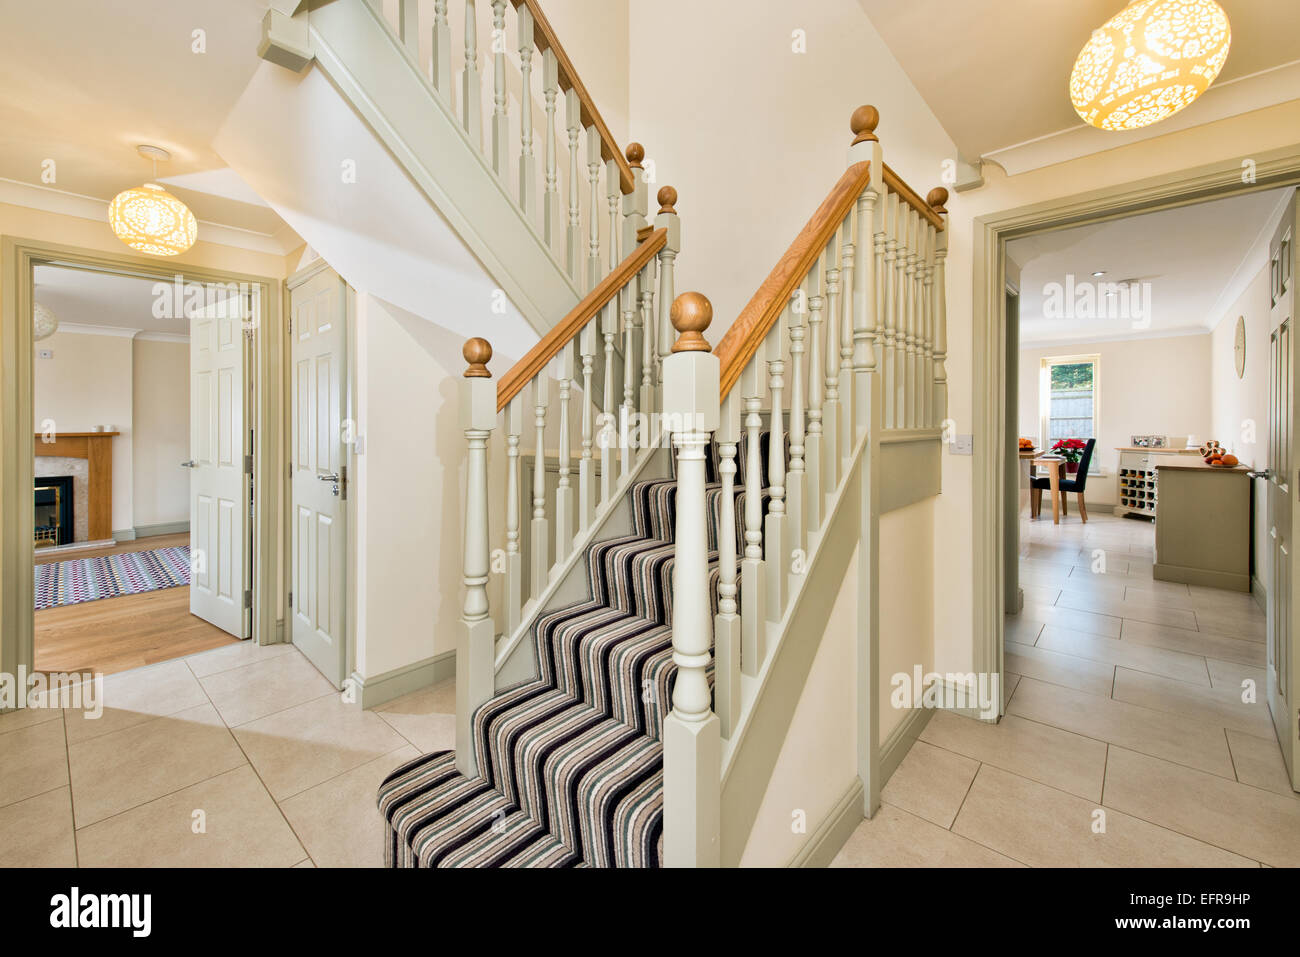 A Tidy Entrance, Hallway U0026 Stairs In A Typical Modern UK Home Leading To A  Kitchen U0026 Living Room